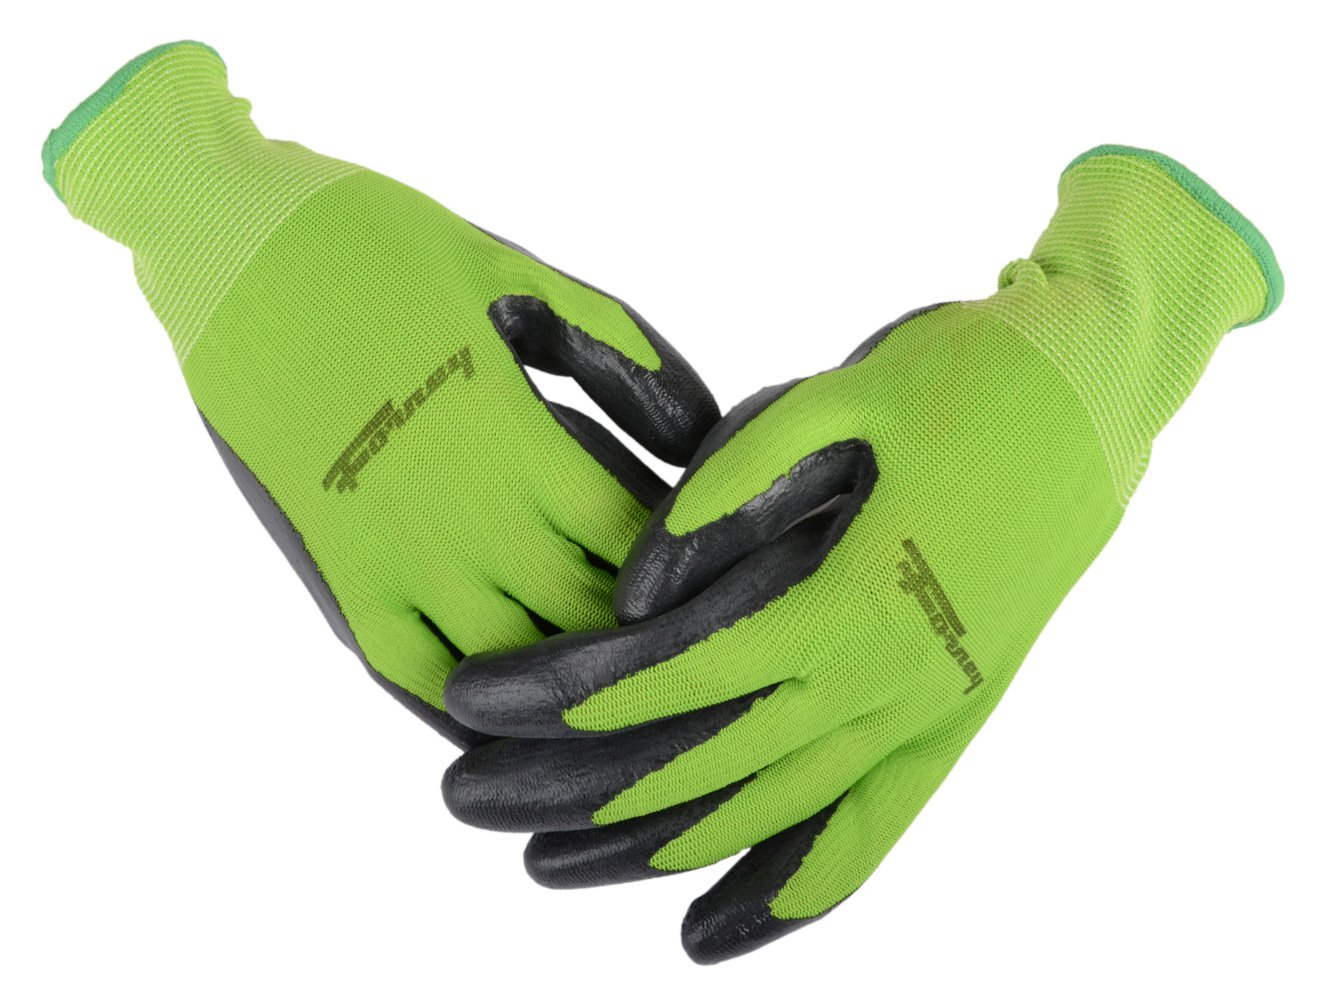 Forney 53221 Nitrile-Dipped Seamless Knit Premium Mens Gloves Small